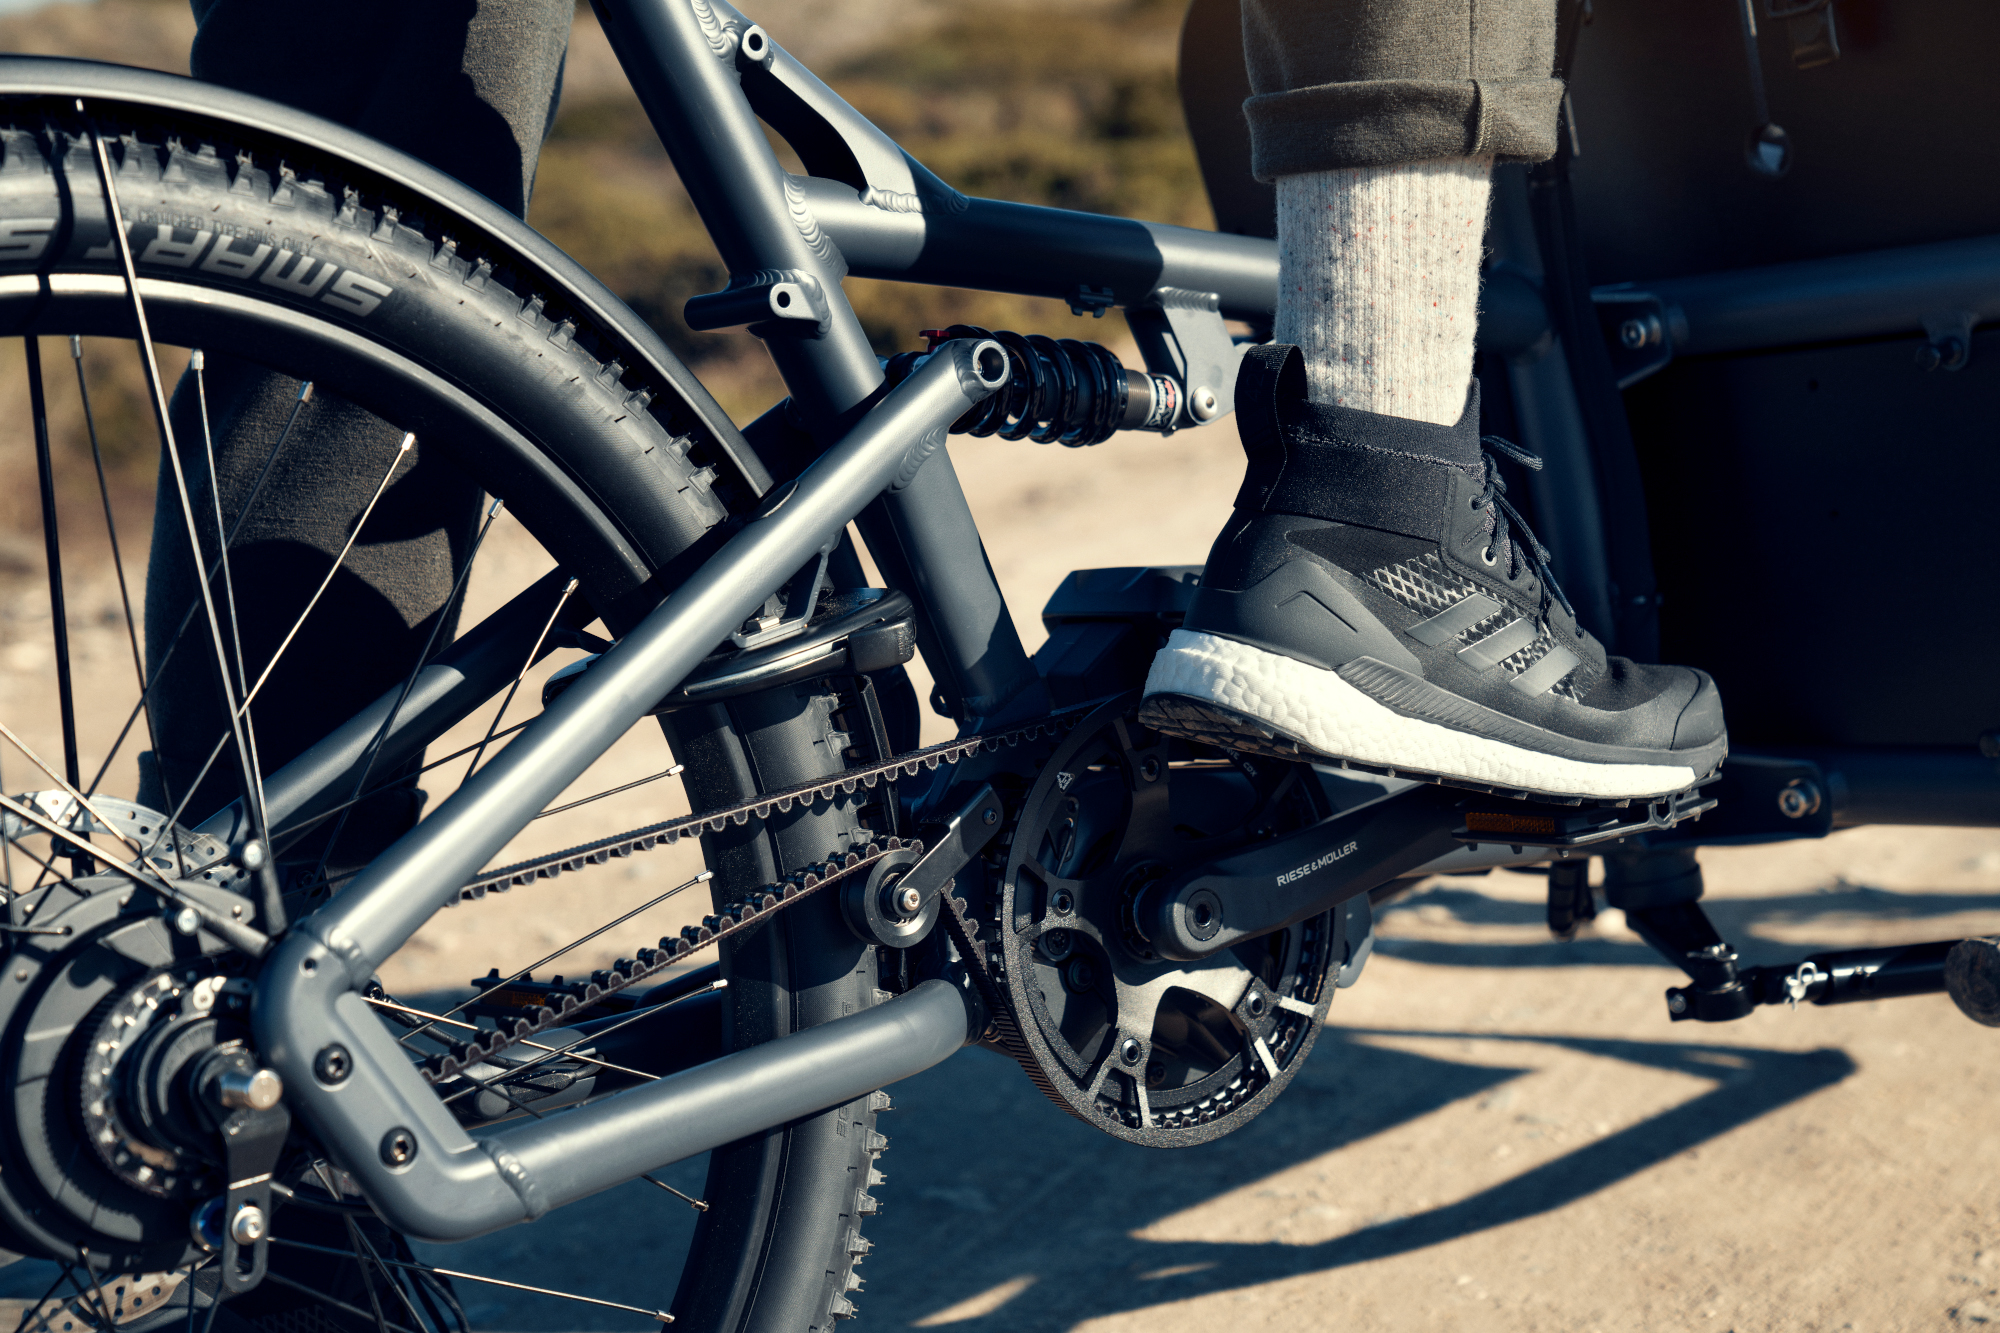 riese-muller-ebike-close-up-pedals-feet